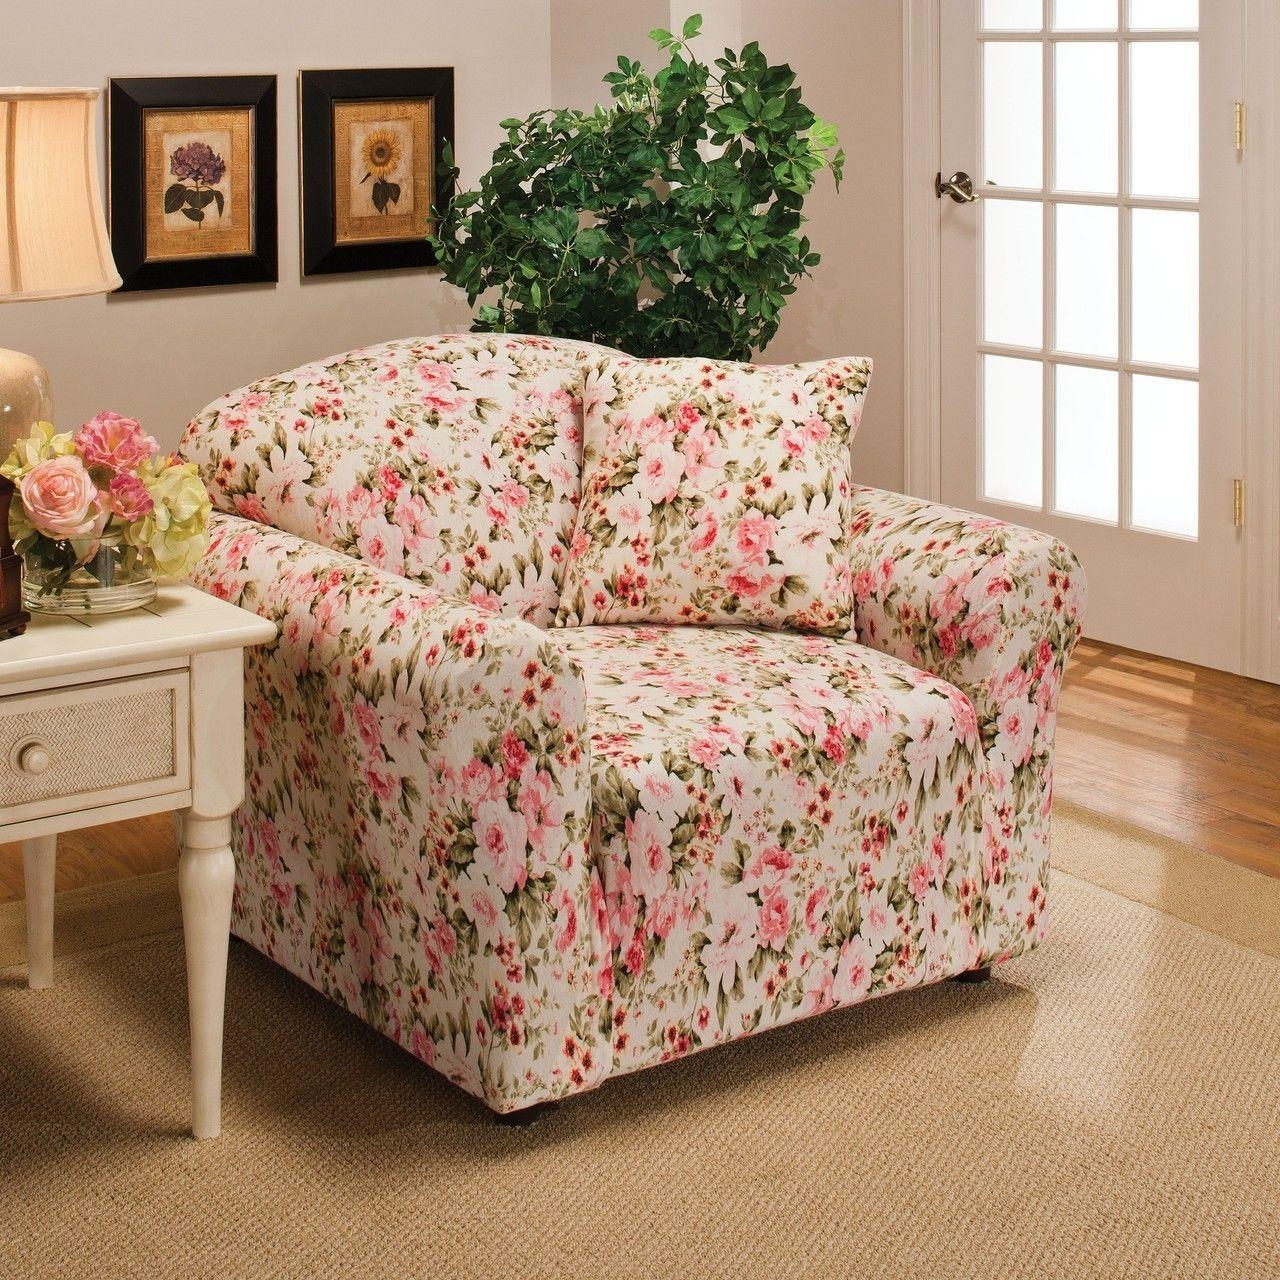 Floral Sofa Slipcovers With Inspiration Hd Images 28810 | Kengire Intended For Floral Slipcovers (View 6 of 20)